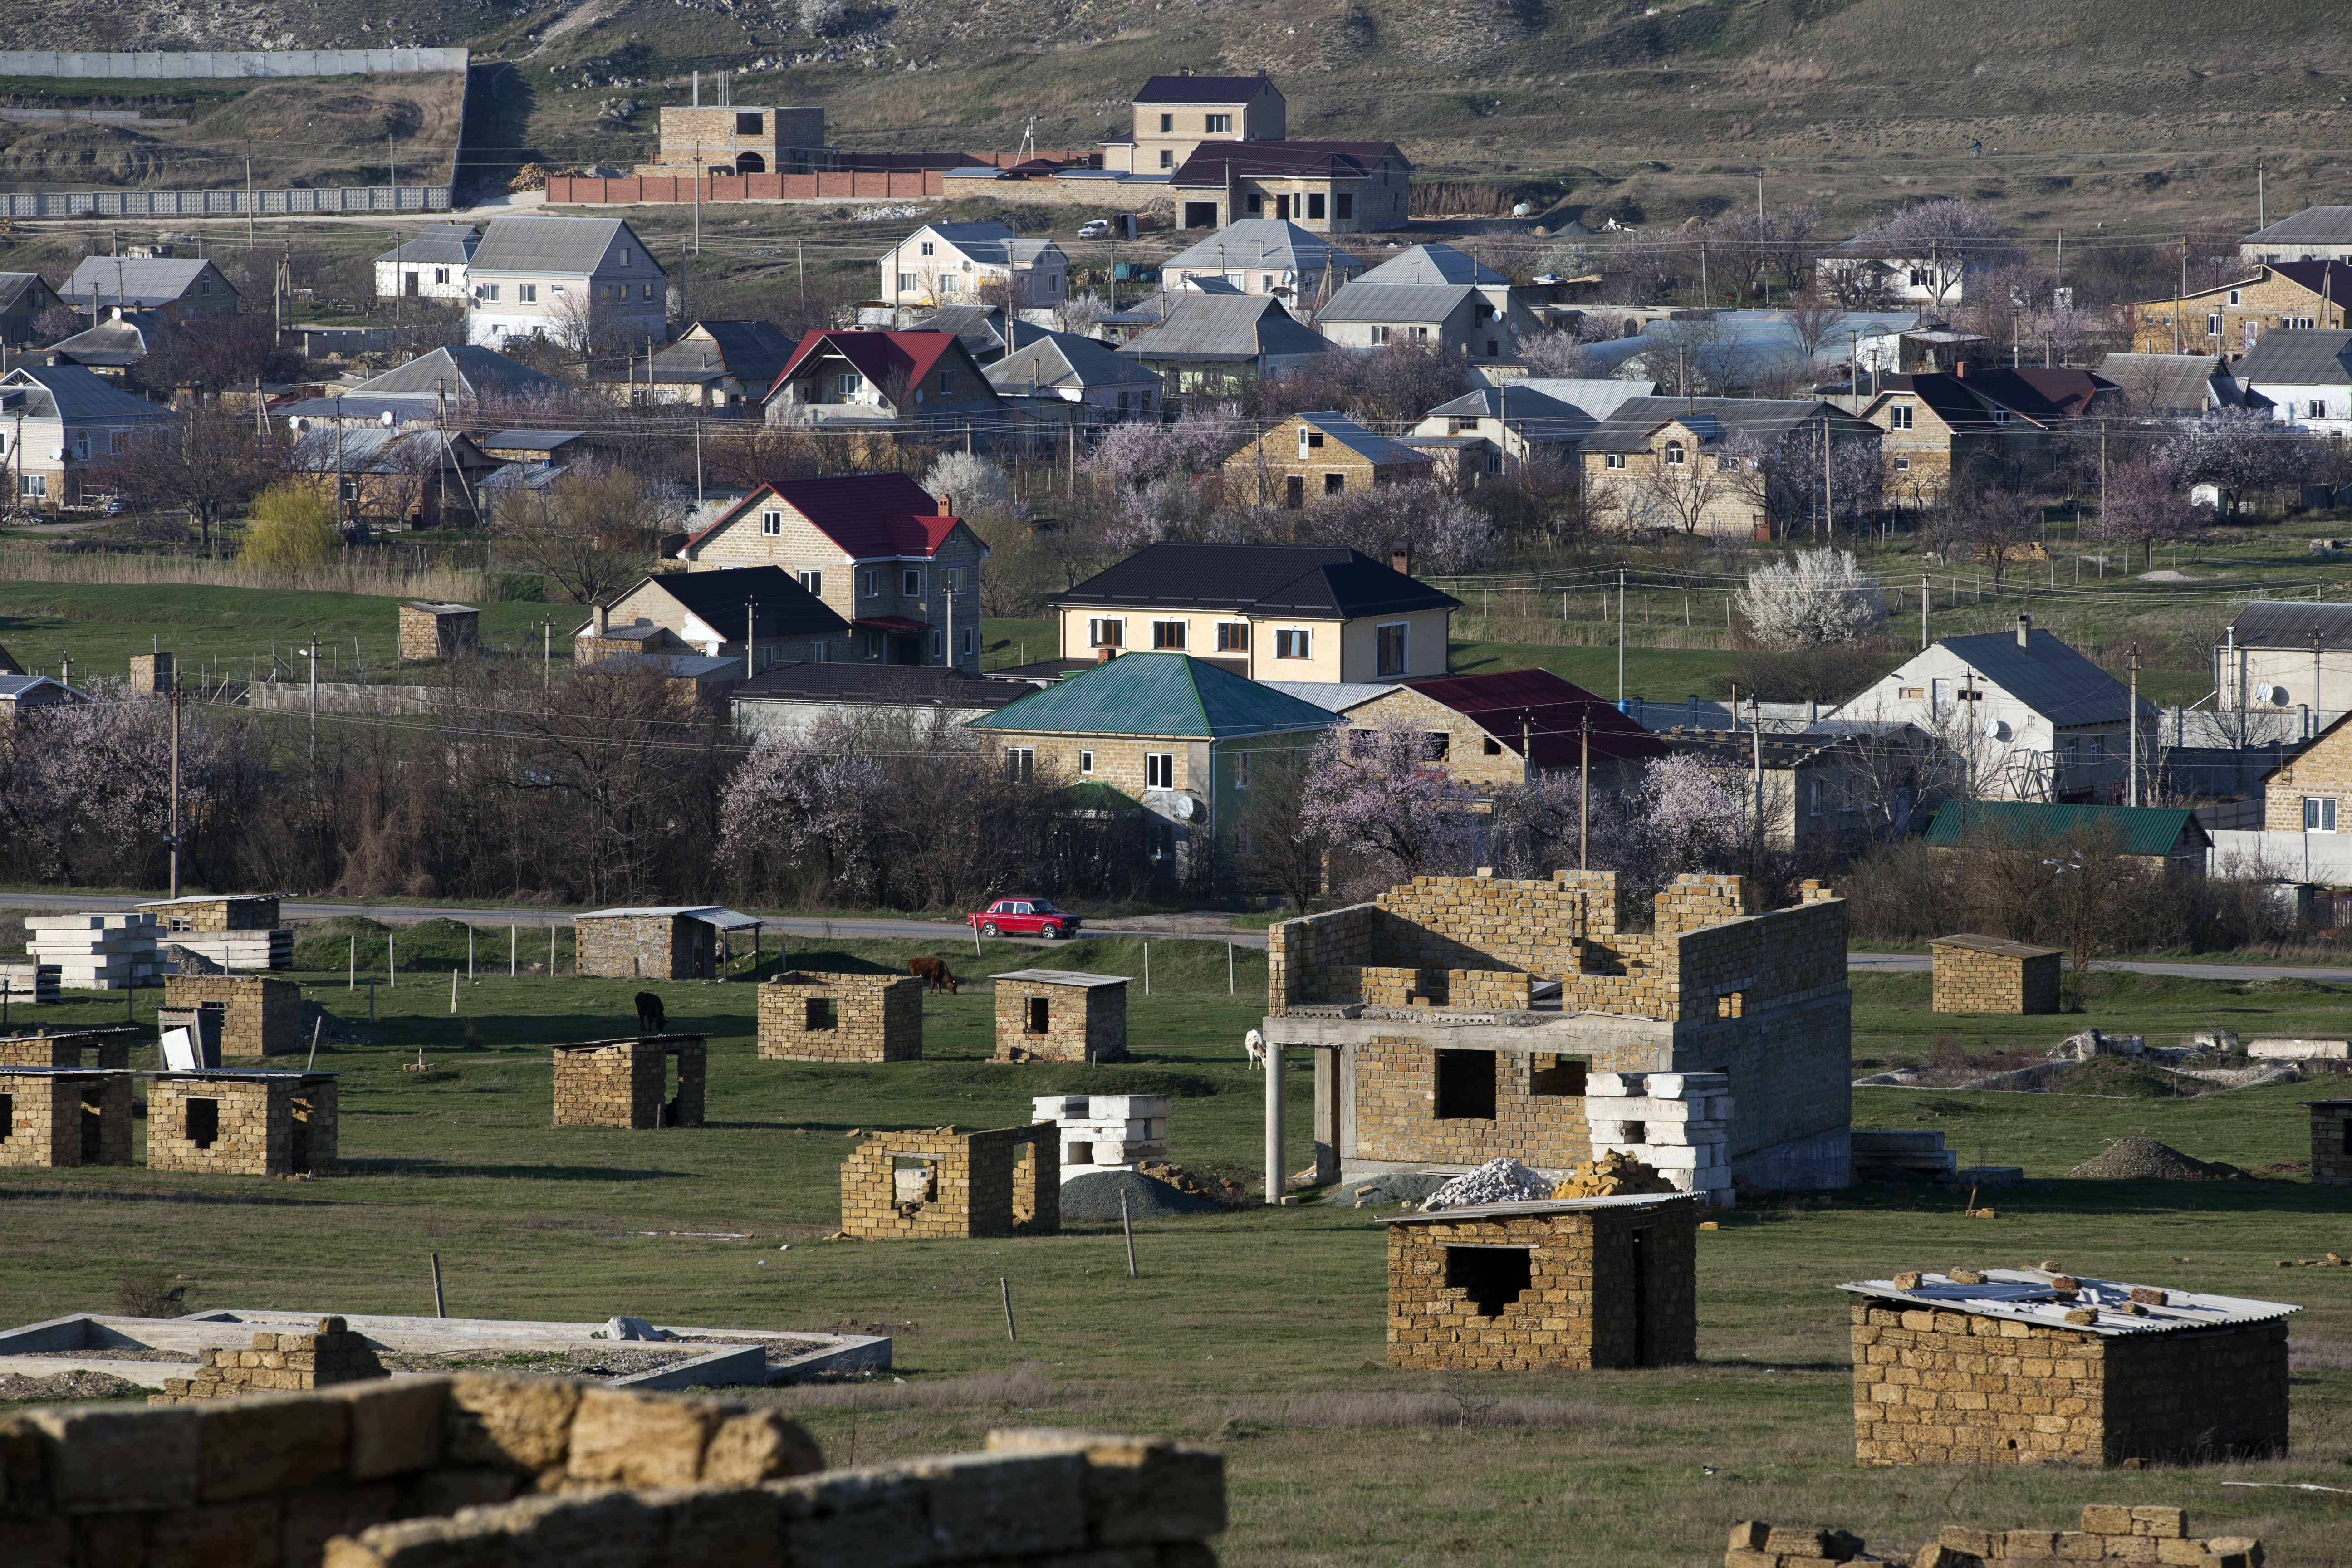 A car passes between Crimea's Tatars recent and long-standing squatter settlements, foreground, in the village Lozovoye-2, not far from Simferopol, Crimea.